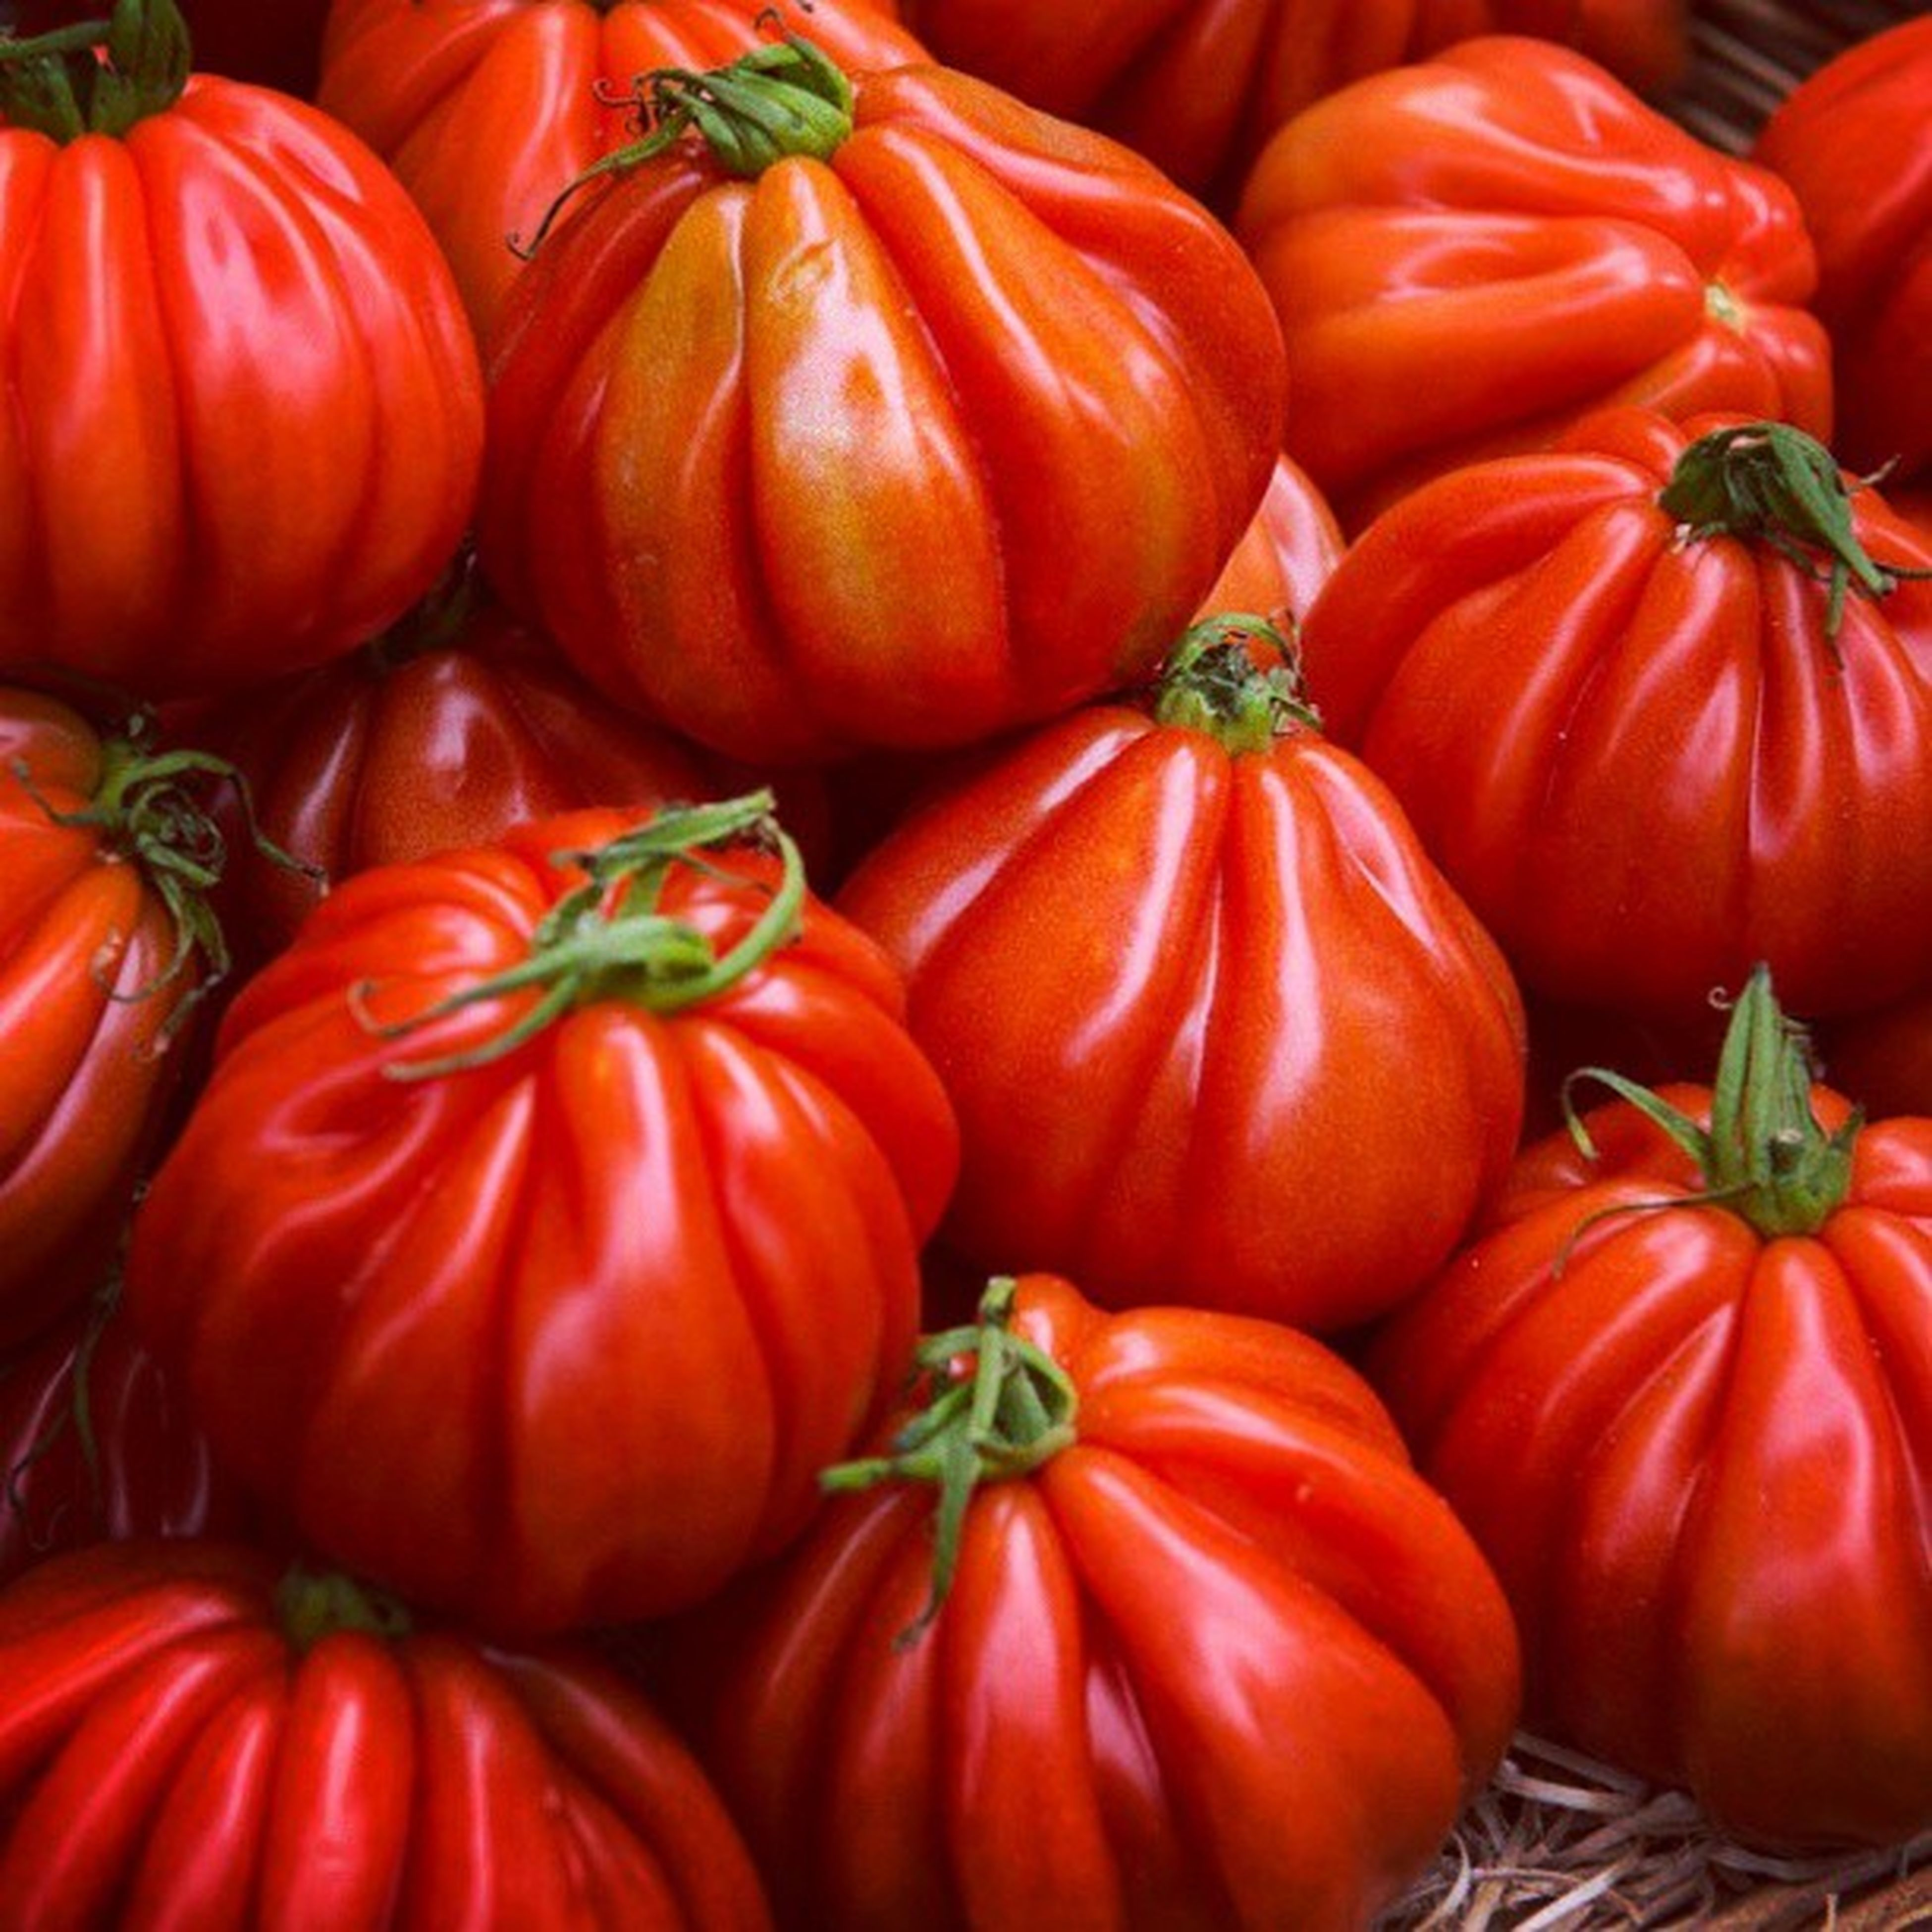 vegetable, red, freshness, healthy eating, food and drink, food, full frame, tomato, backgrounds, abundance, large group of objects, for sale, market, market stall, retail, still life, red bell pepper, organic, bell pepper, close-up